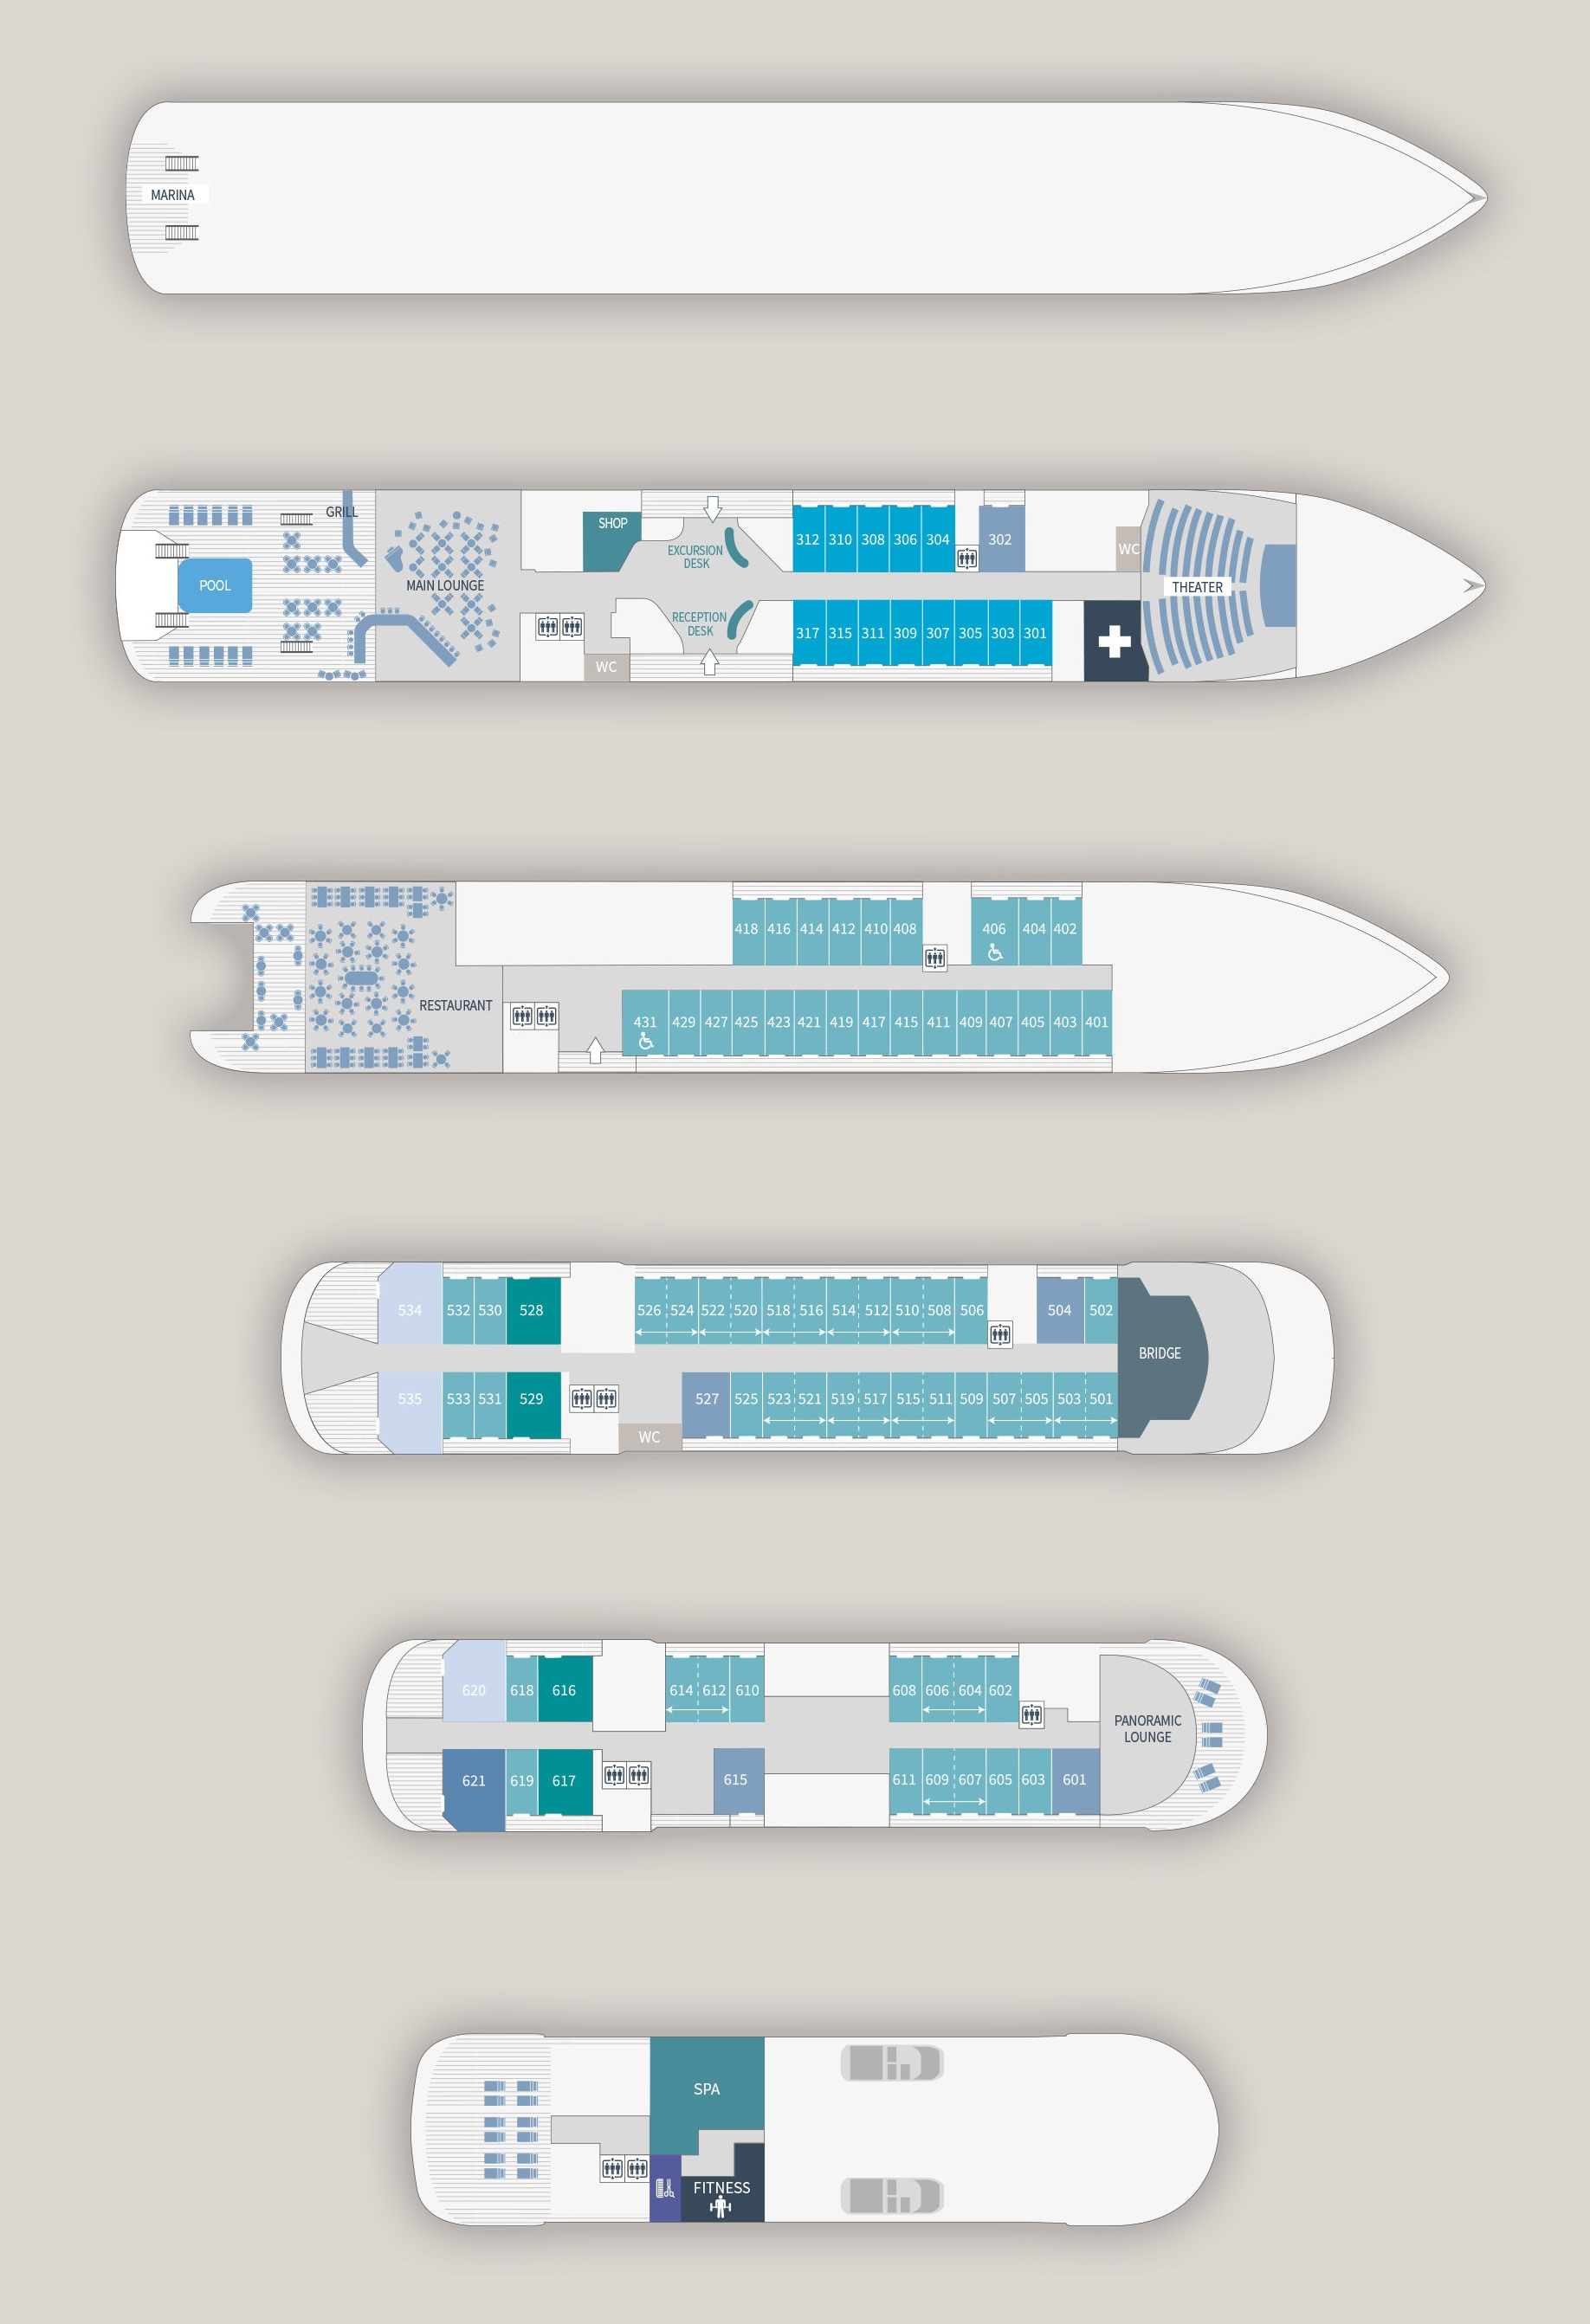 Cabin layout for Le Laperouse